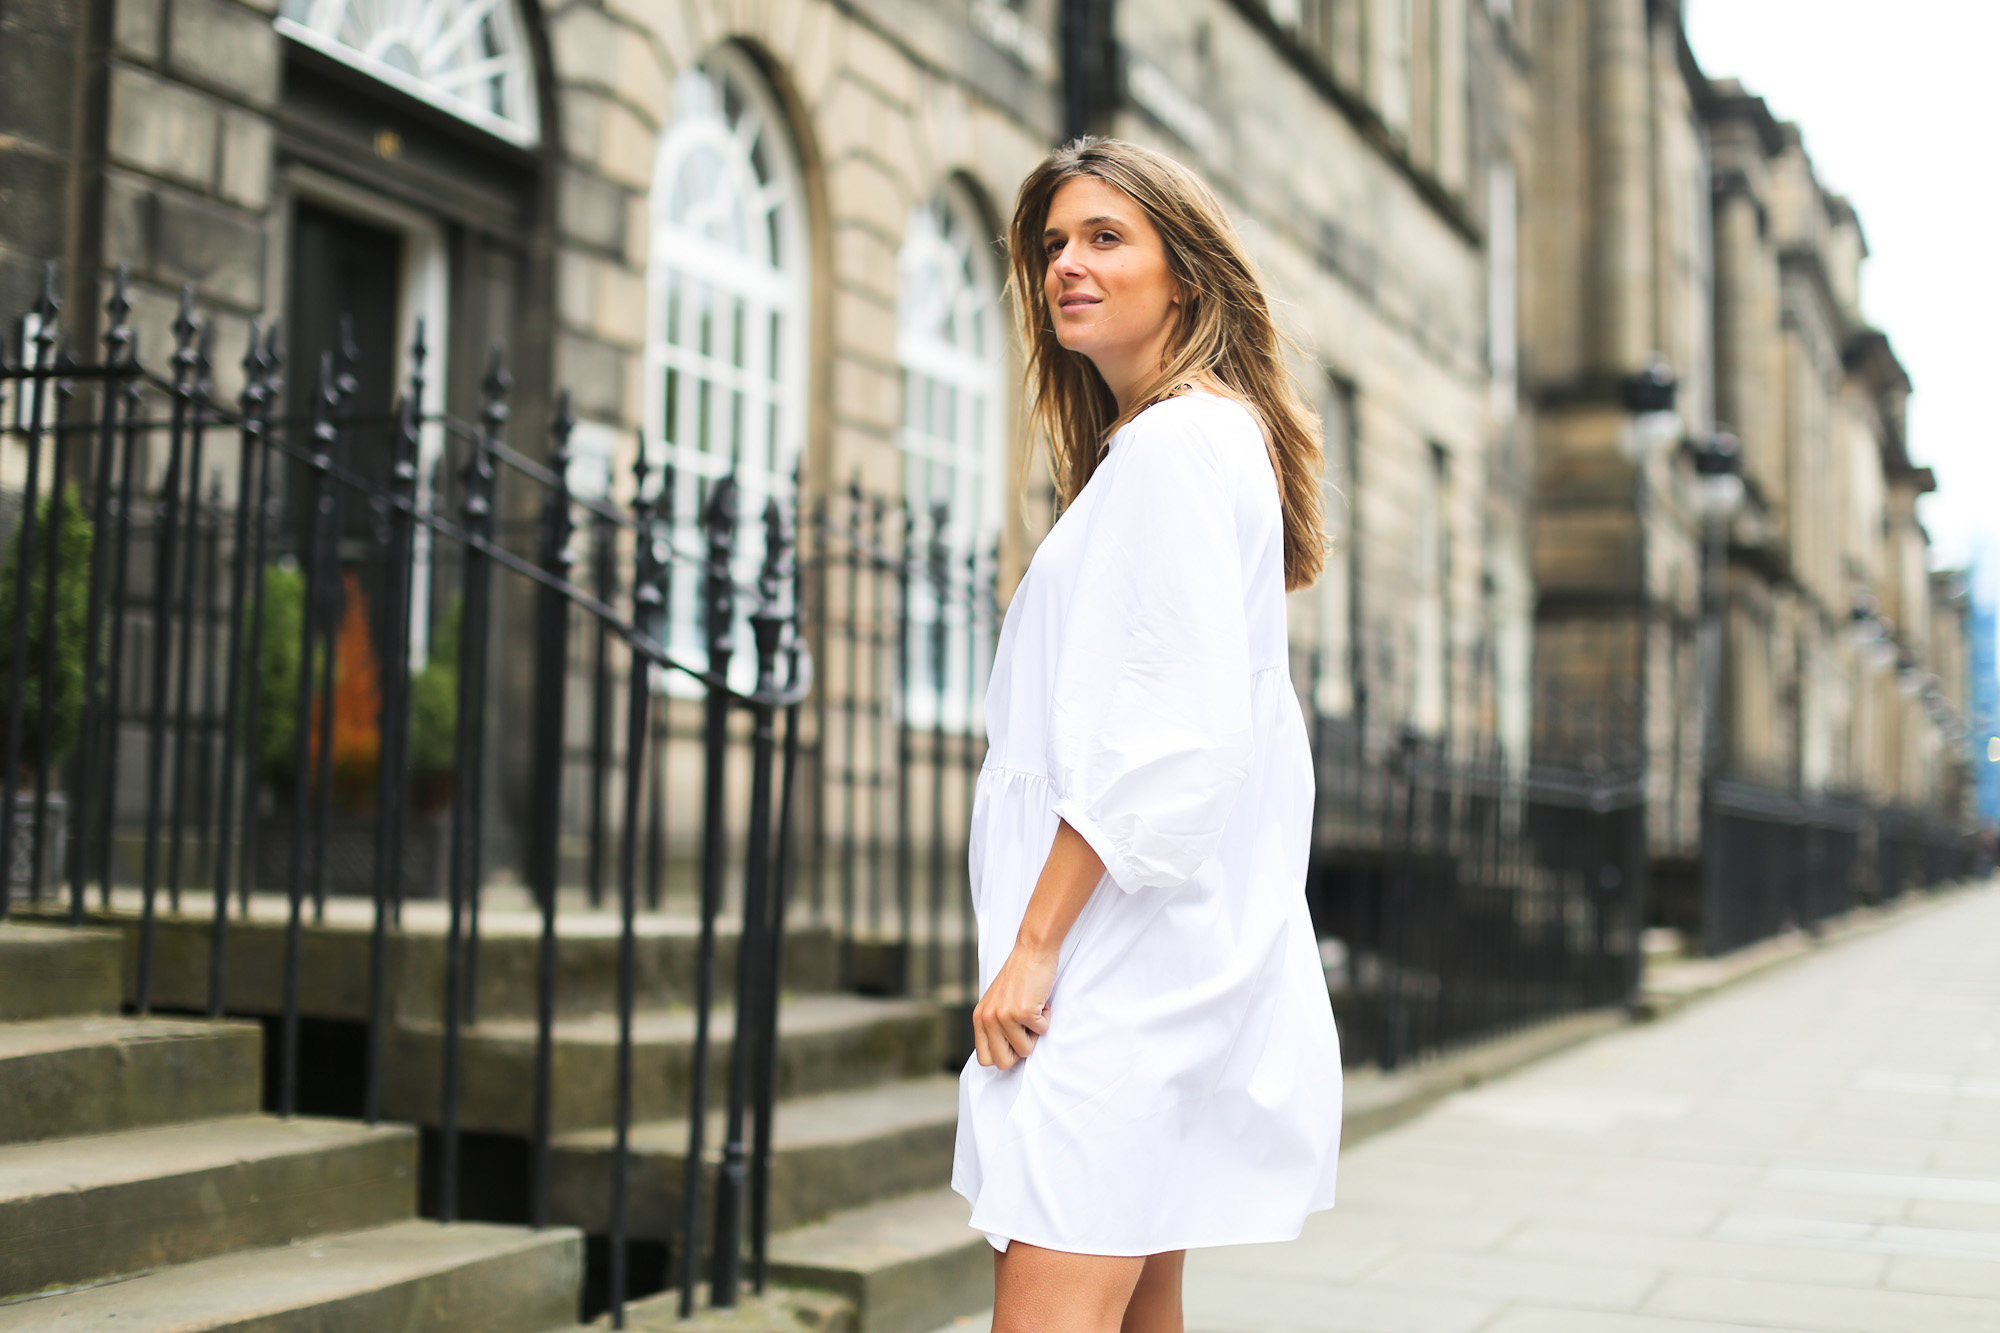 Clochet_streetstyle_zara_littlewhitedress_goldengoosedeluxesneakers_edinburgh-5